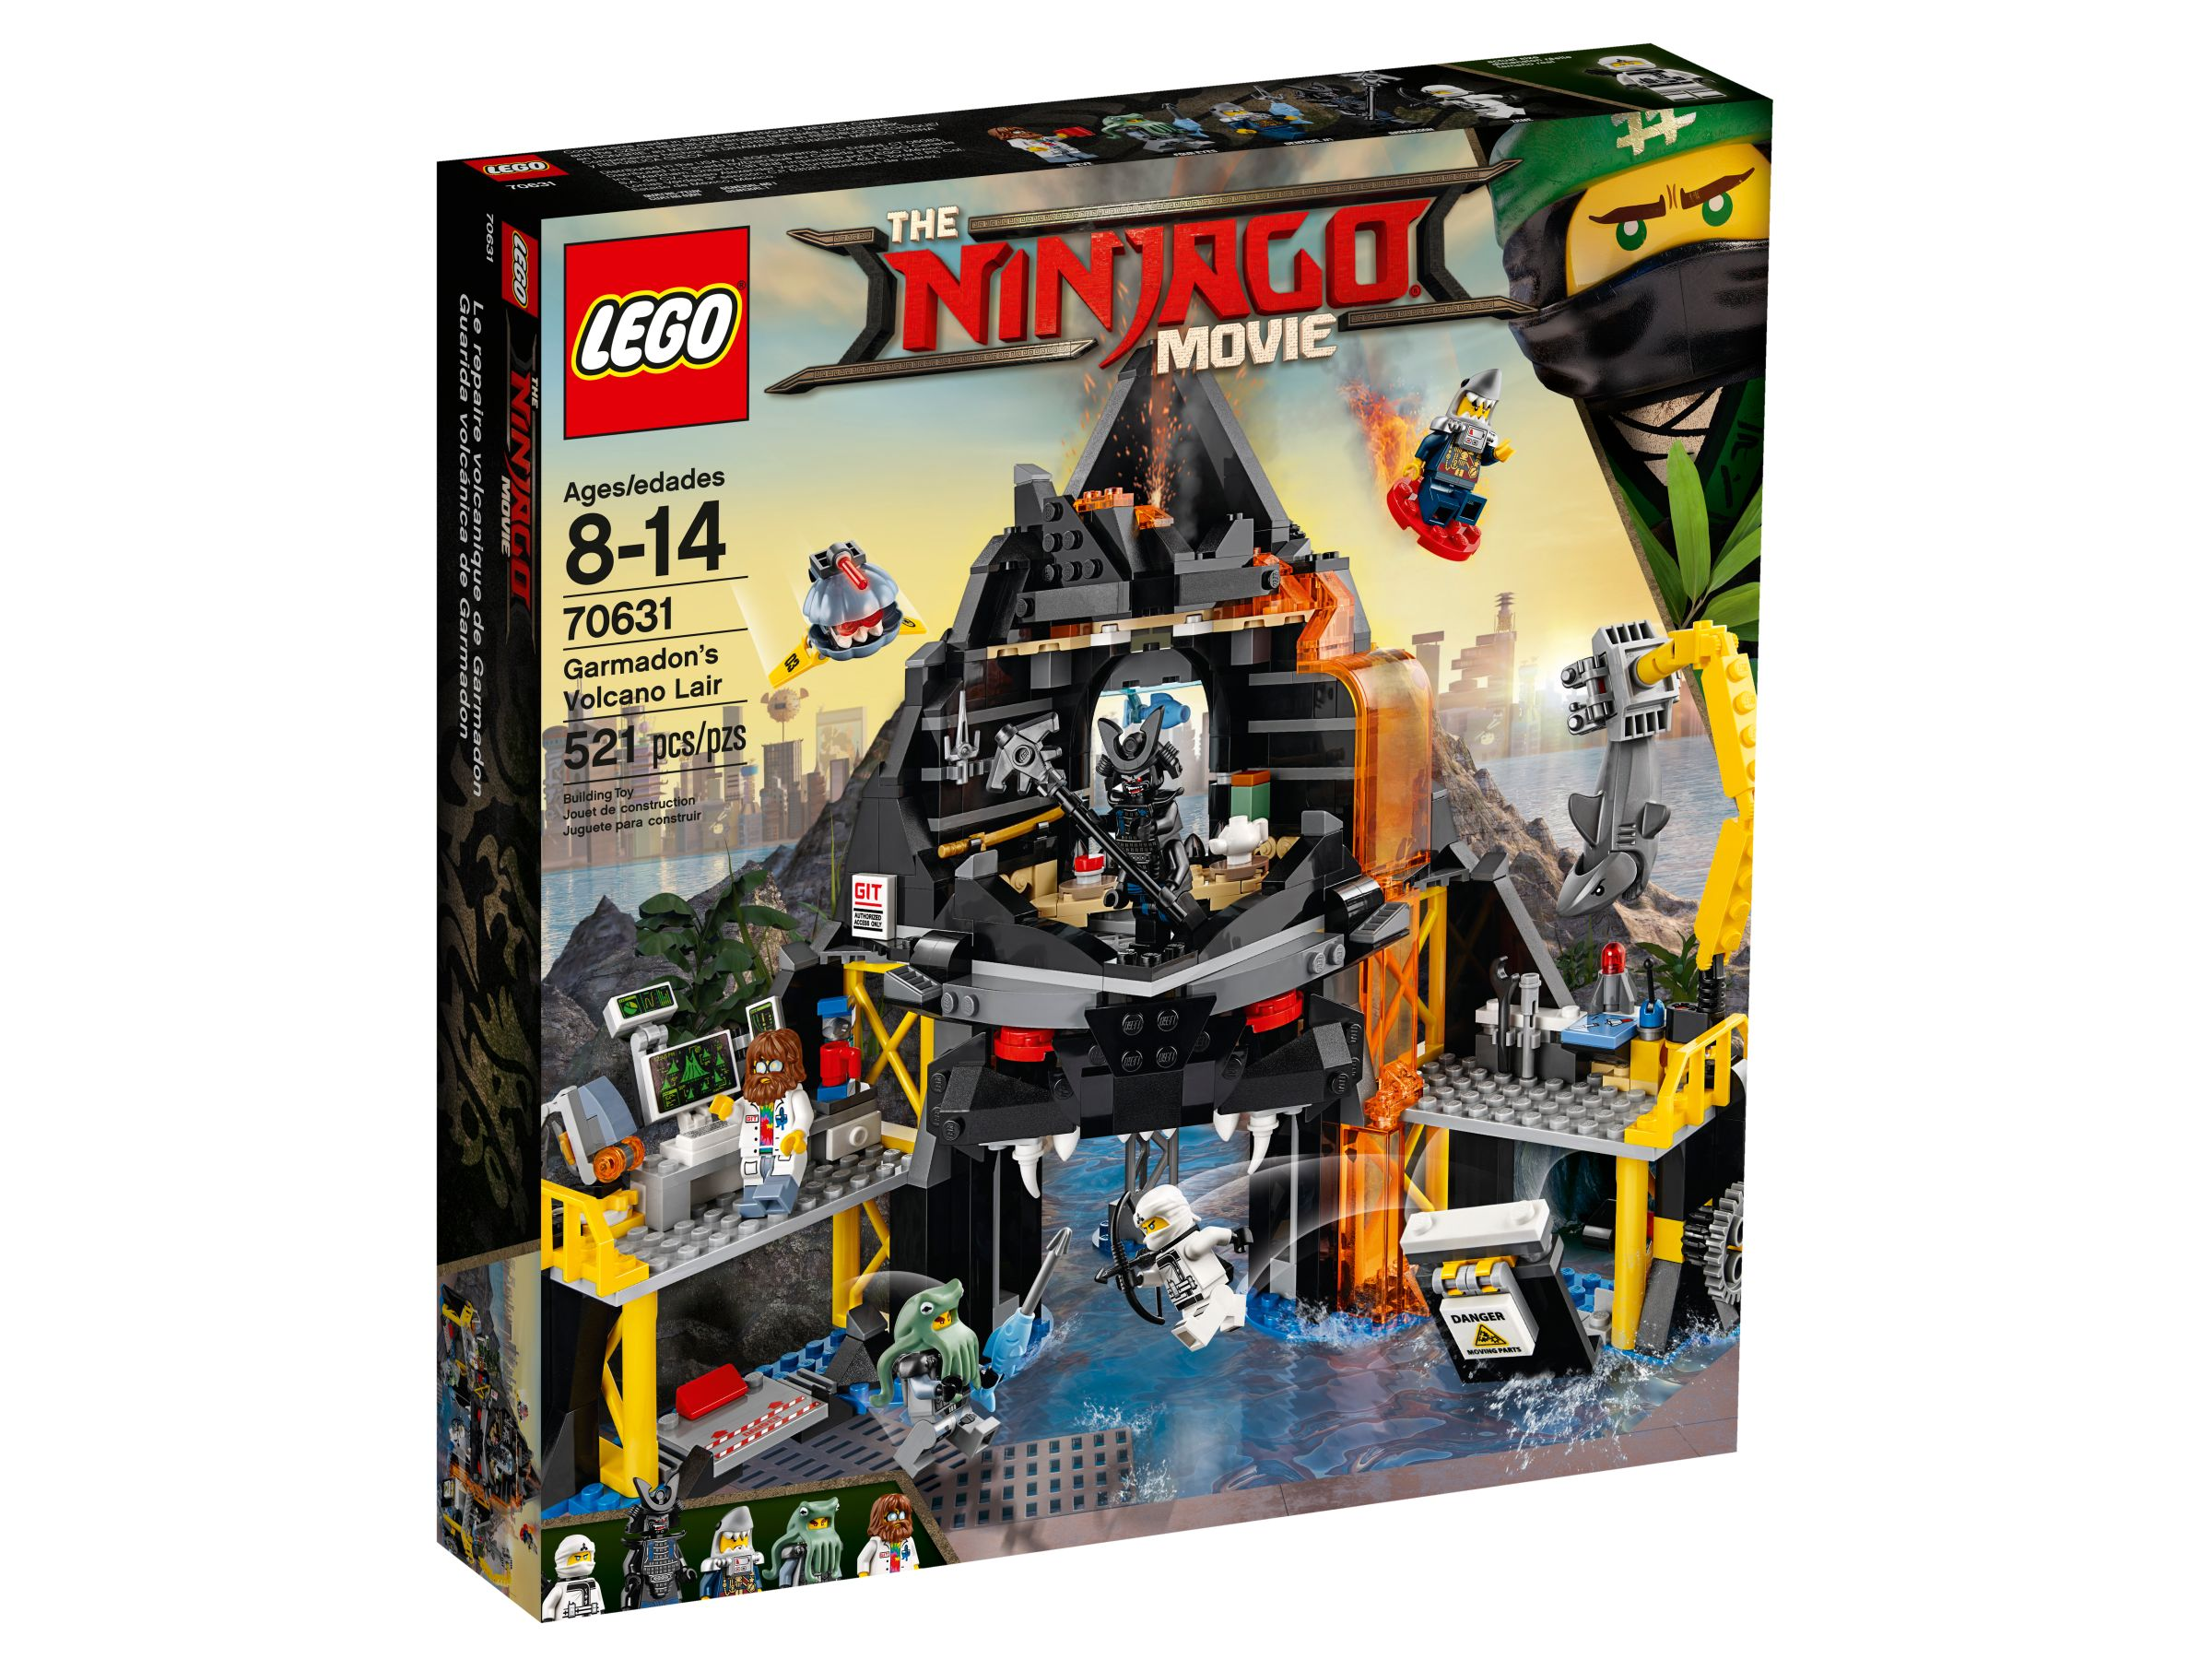 LEGO The LEGO Ninjago Movie 70631 Garmadons Vulkanversteck LEGO_70631_alt1.jpg